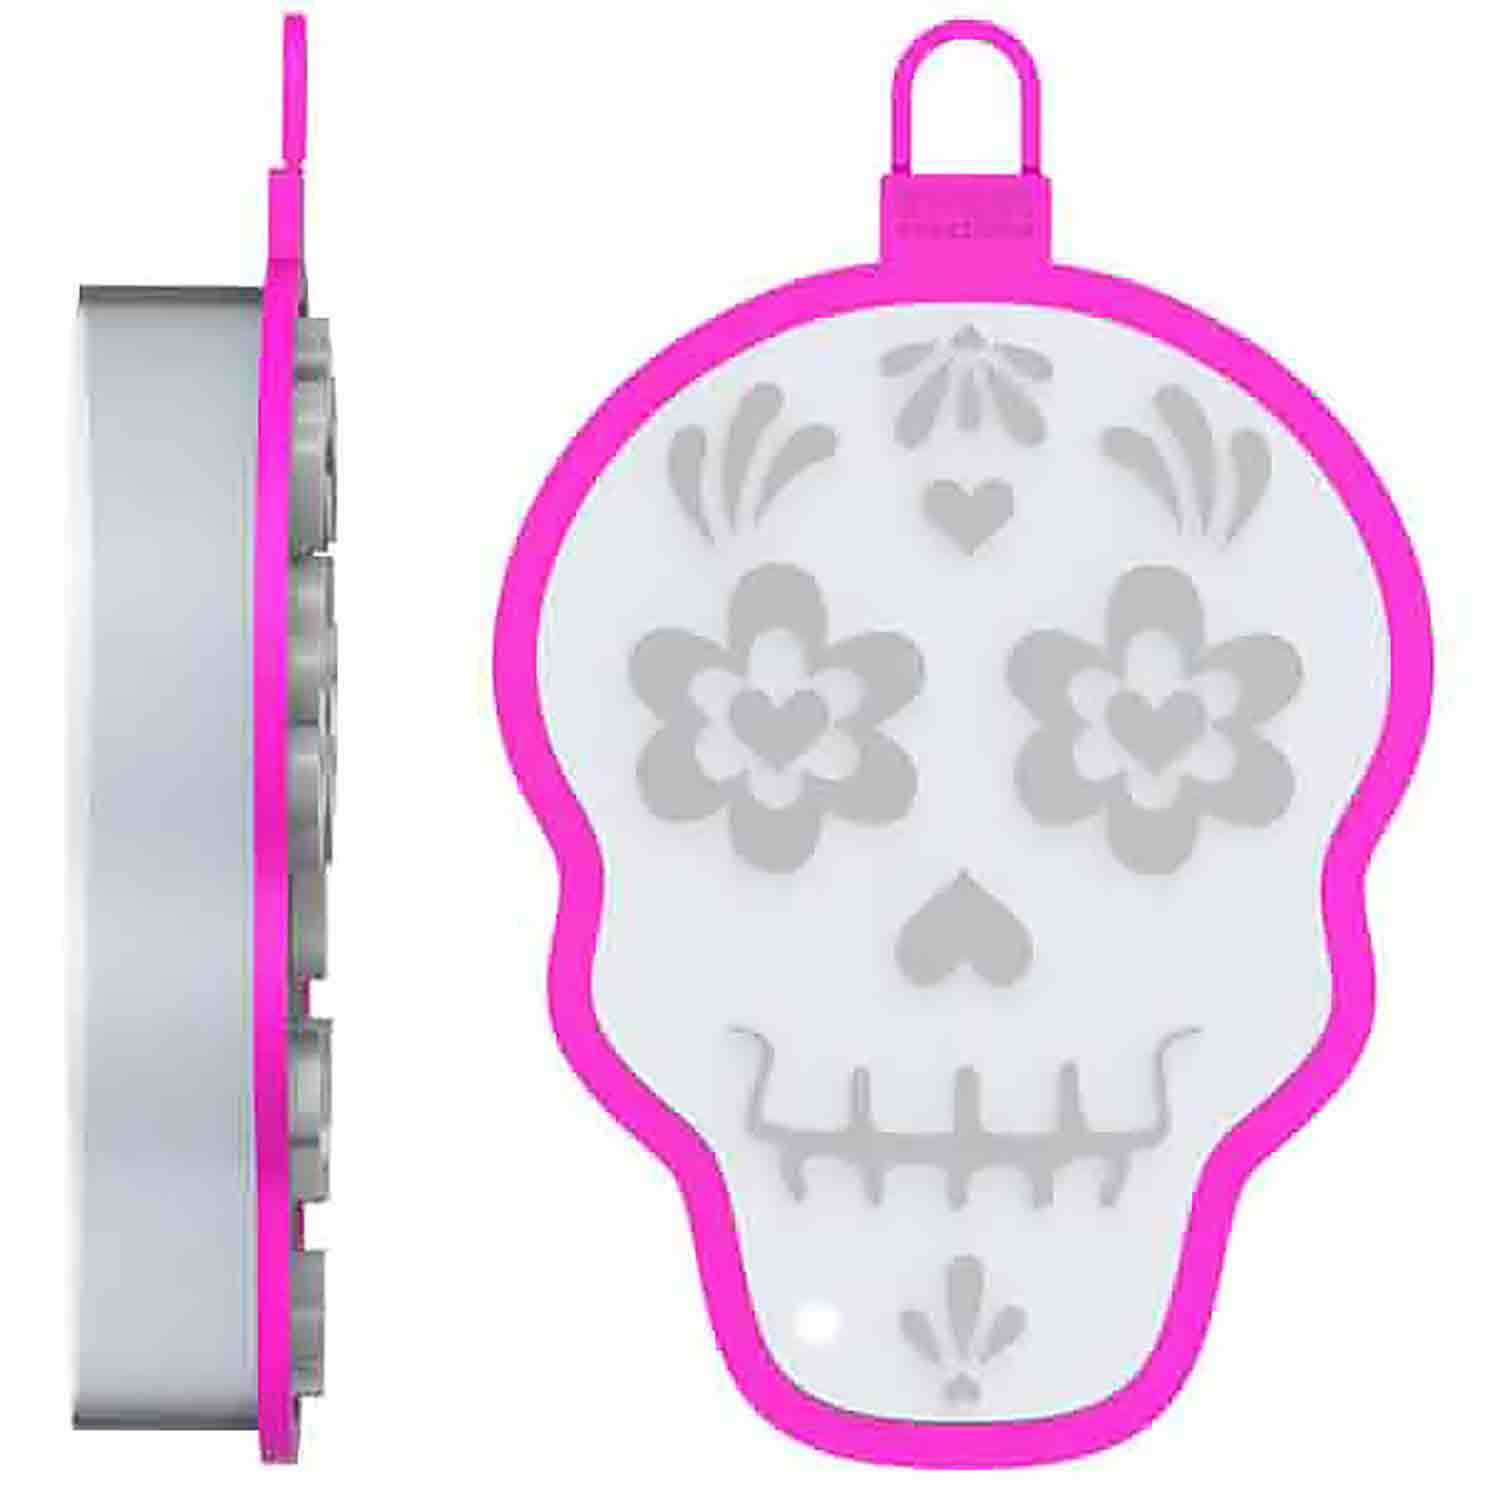 Skull Cookie Cutter Stamp